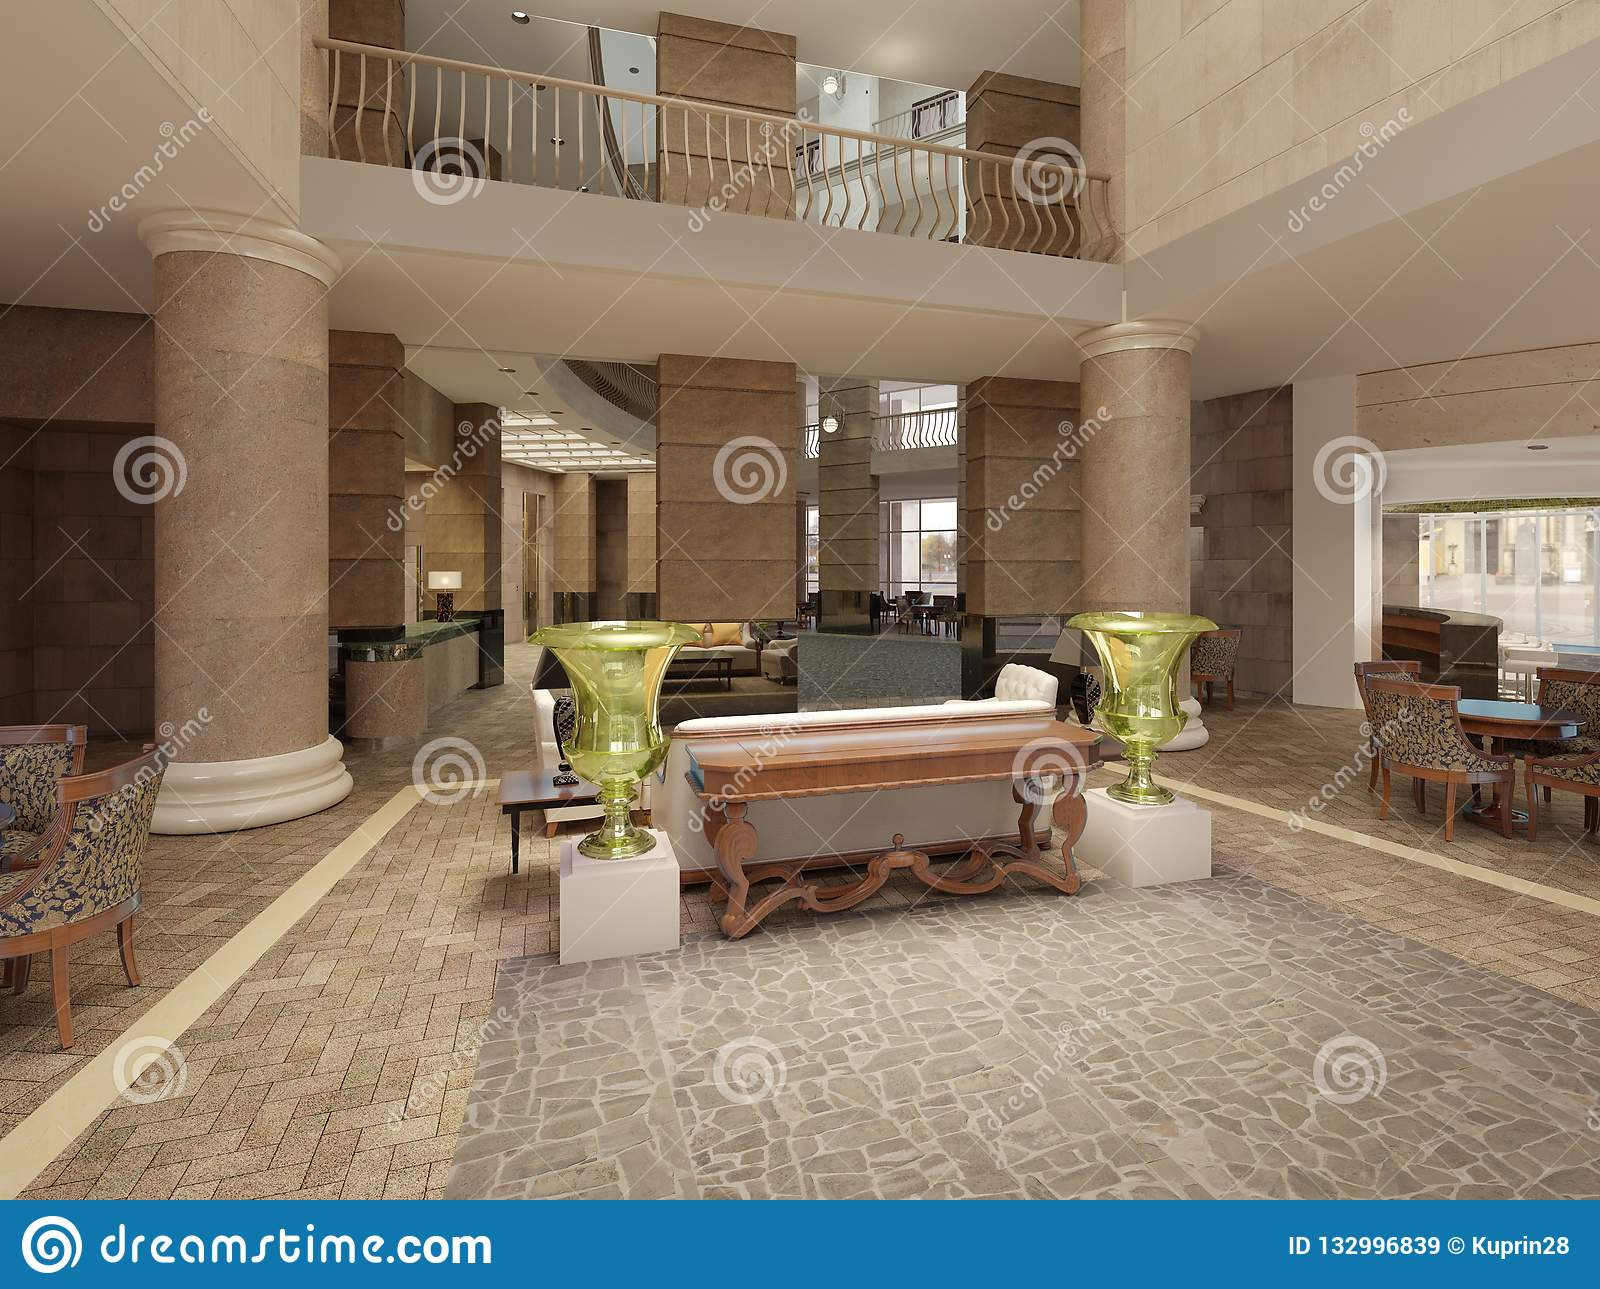 Modern Hotel Lobby With Multi,level Interior Space And